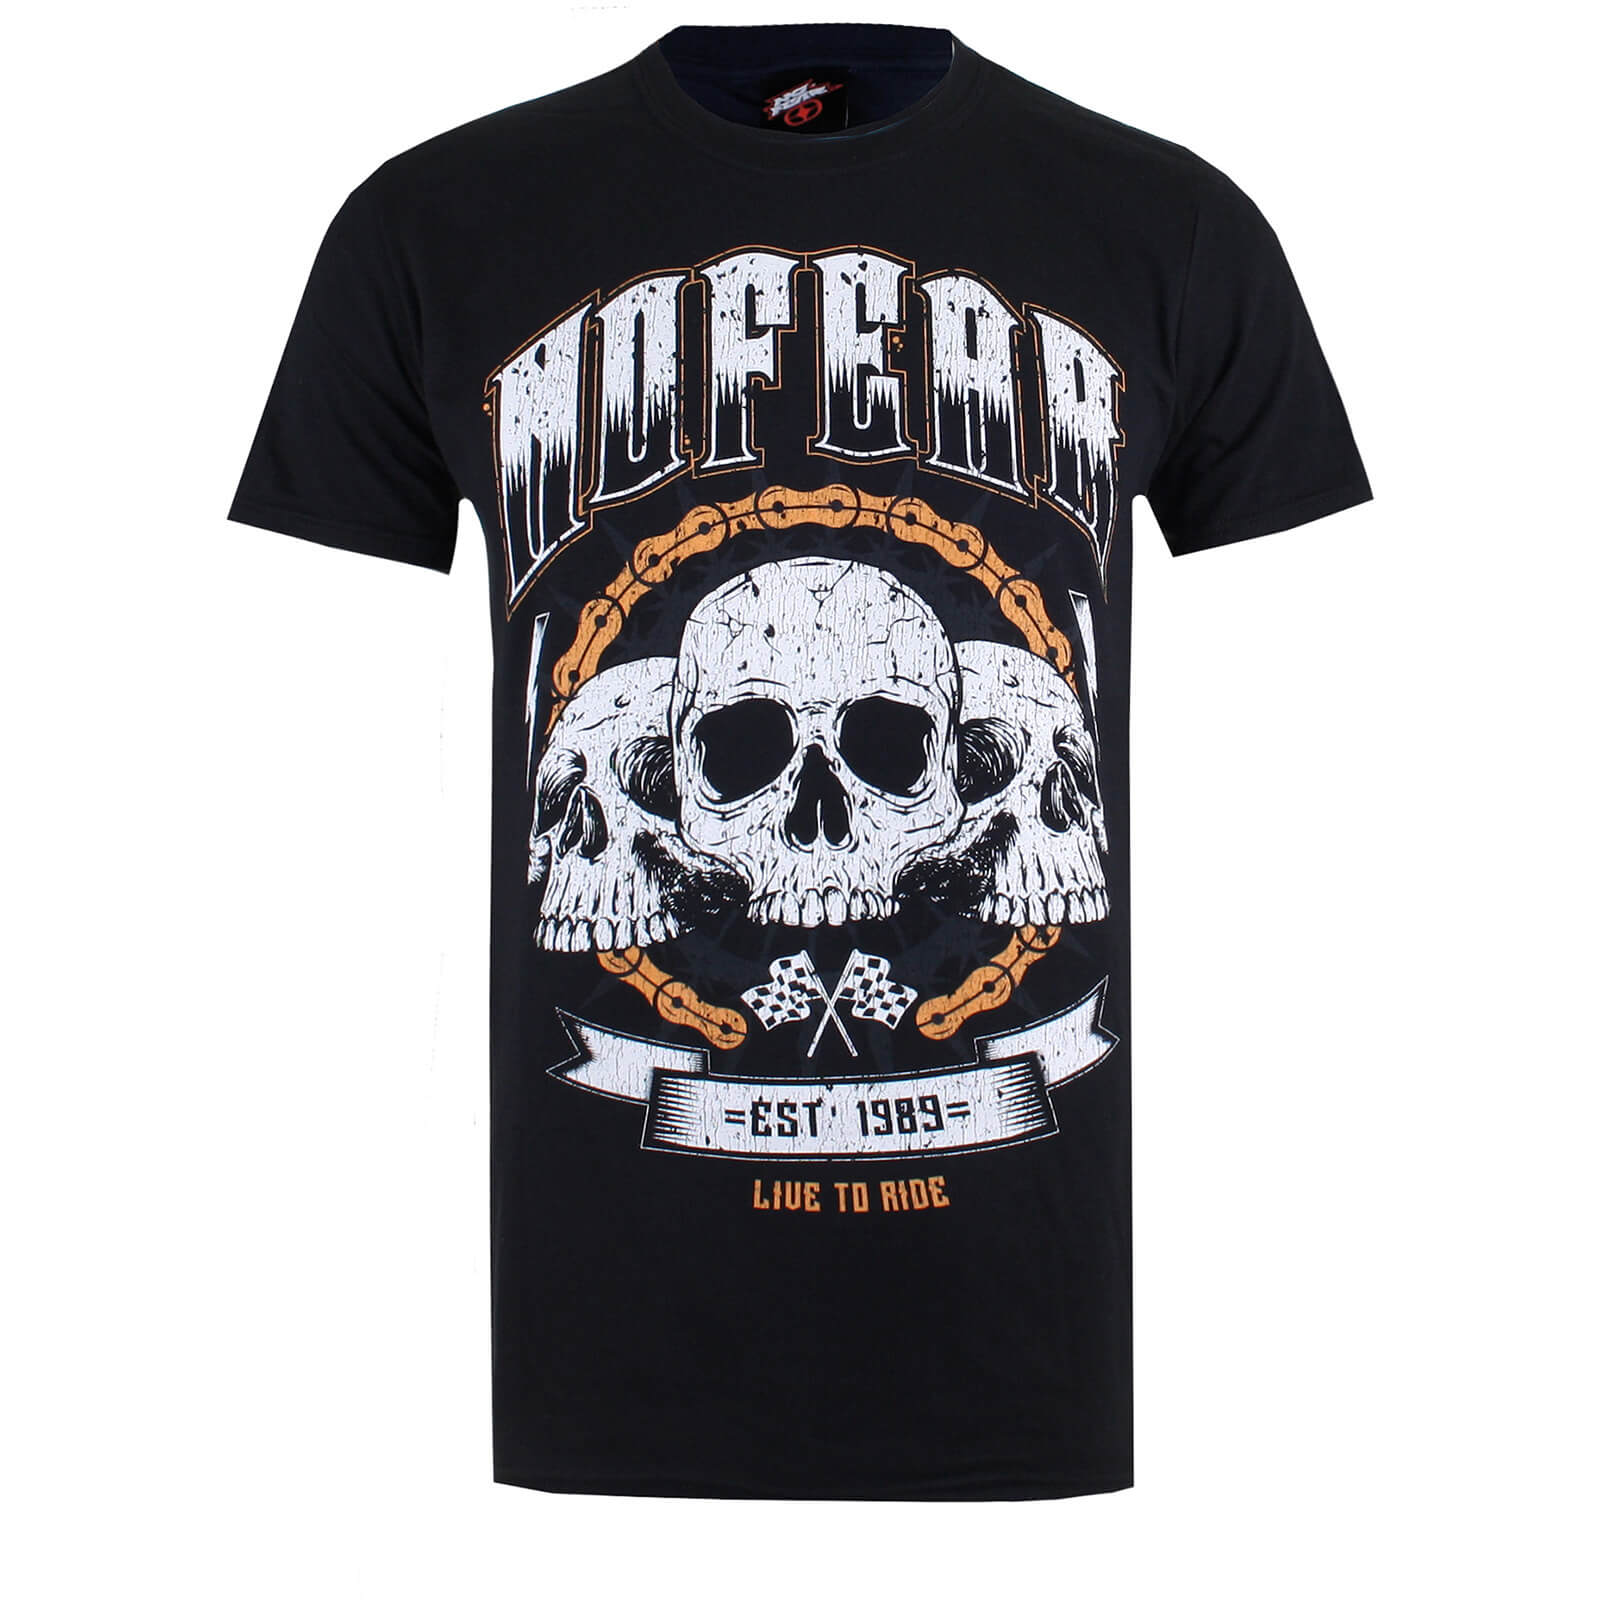 f8634fd62ea8 No Fear Men's Skull Chain T-Shirt - Black | My Geek Box